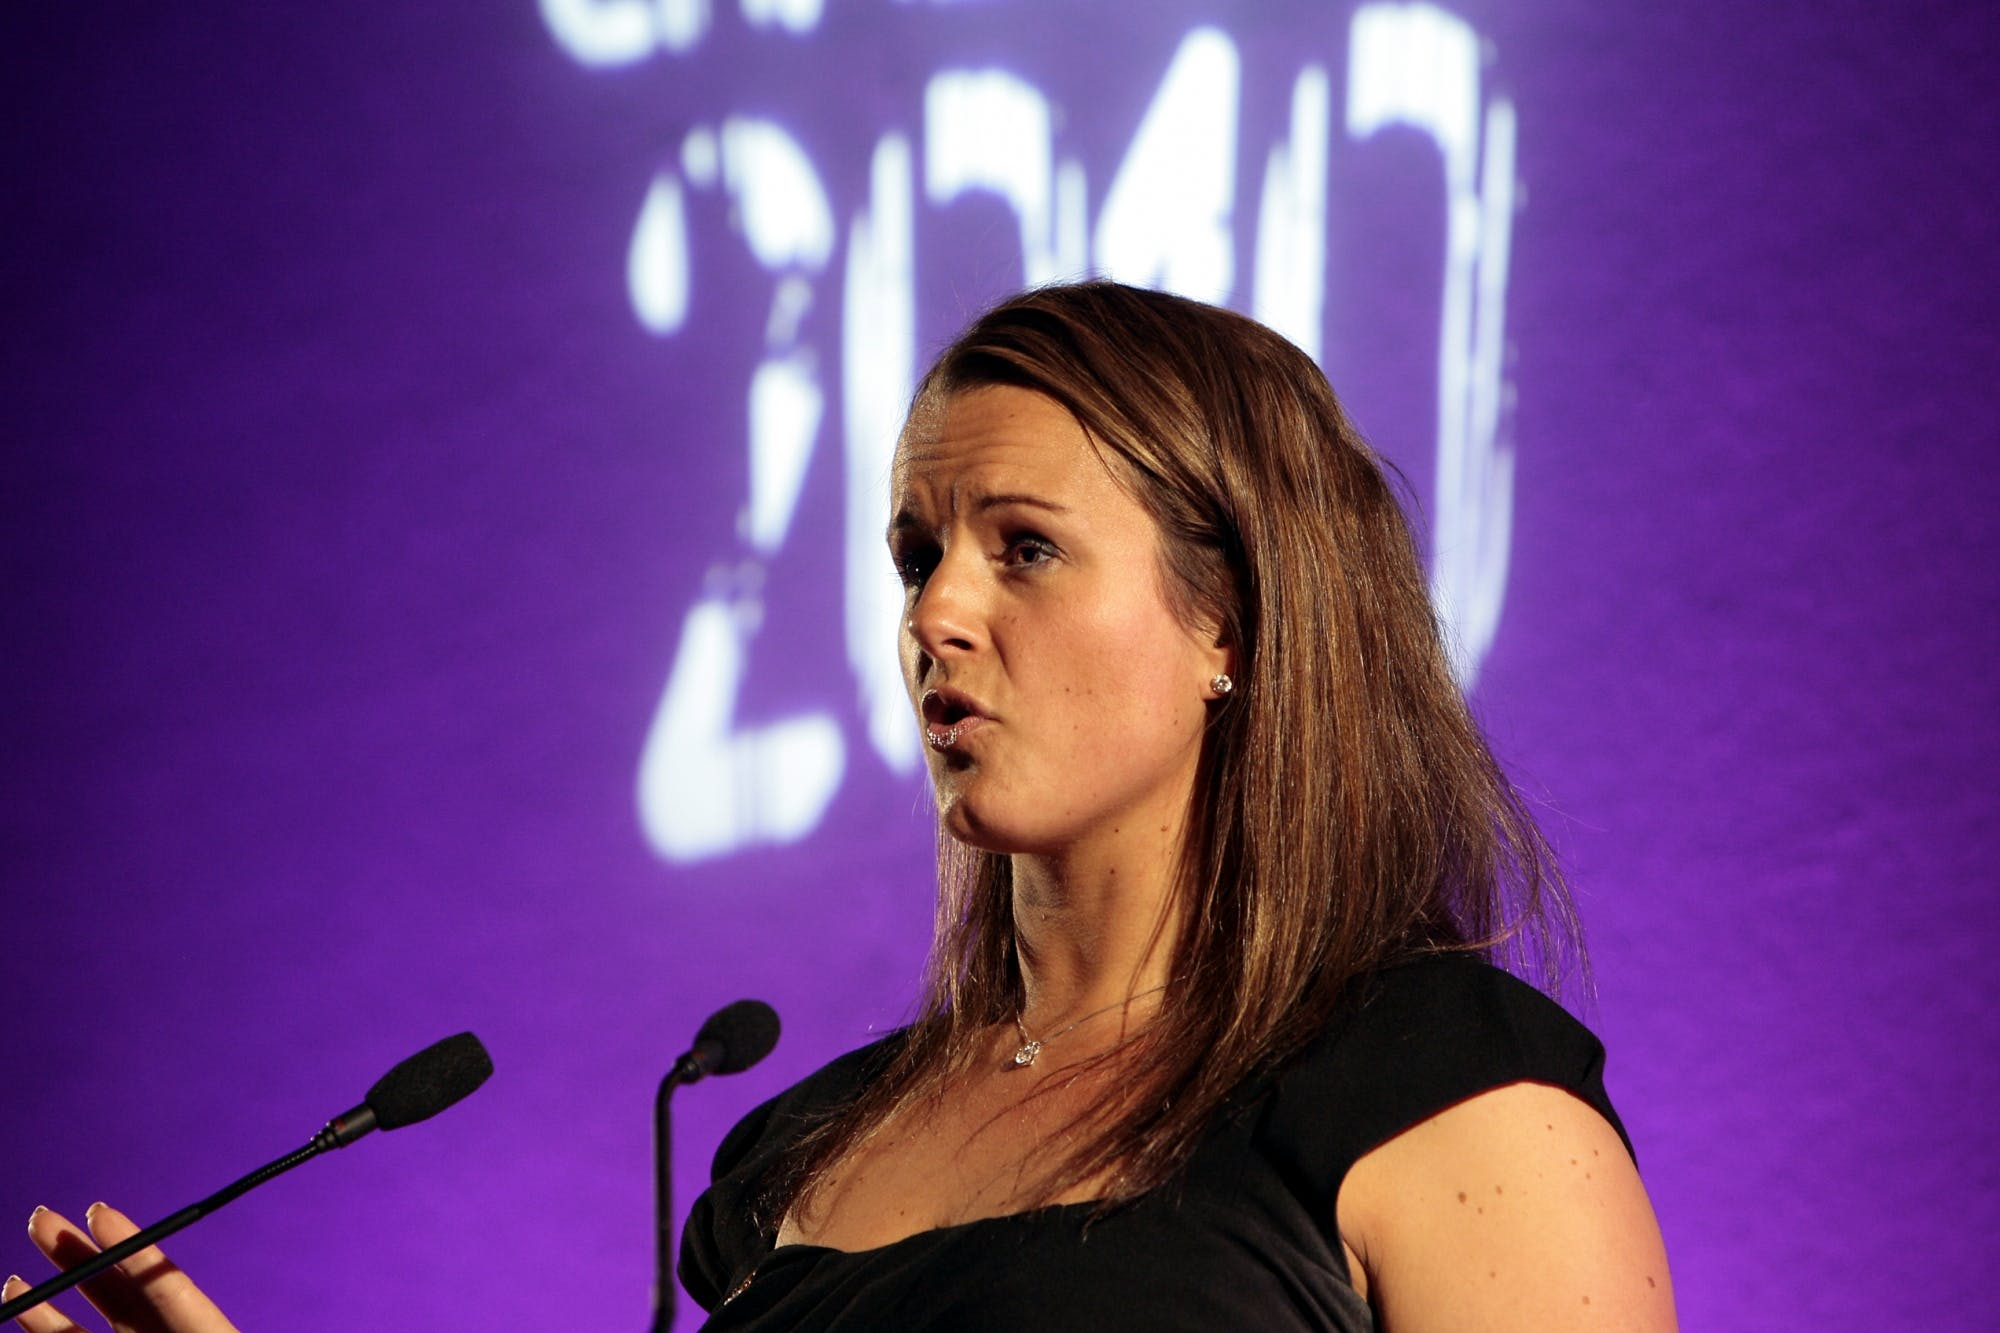 Claire speaking at the 'Big Challenge Awards'